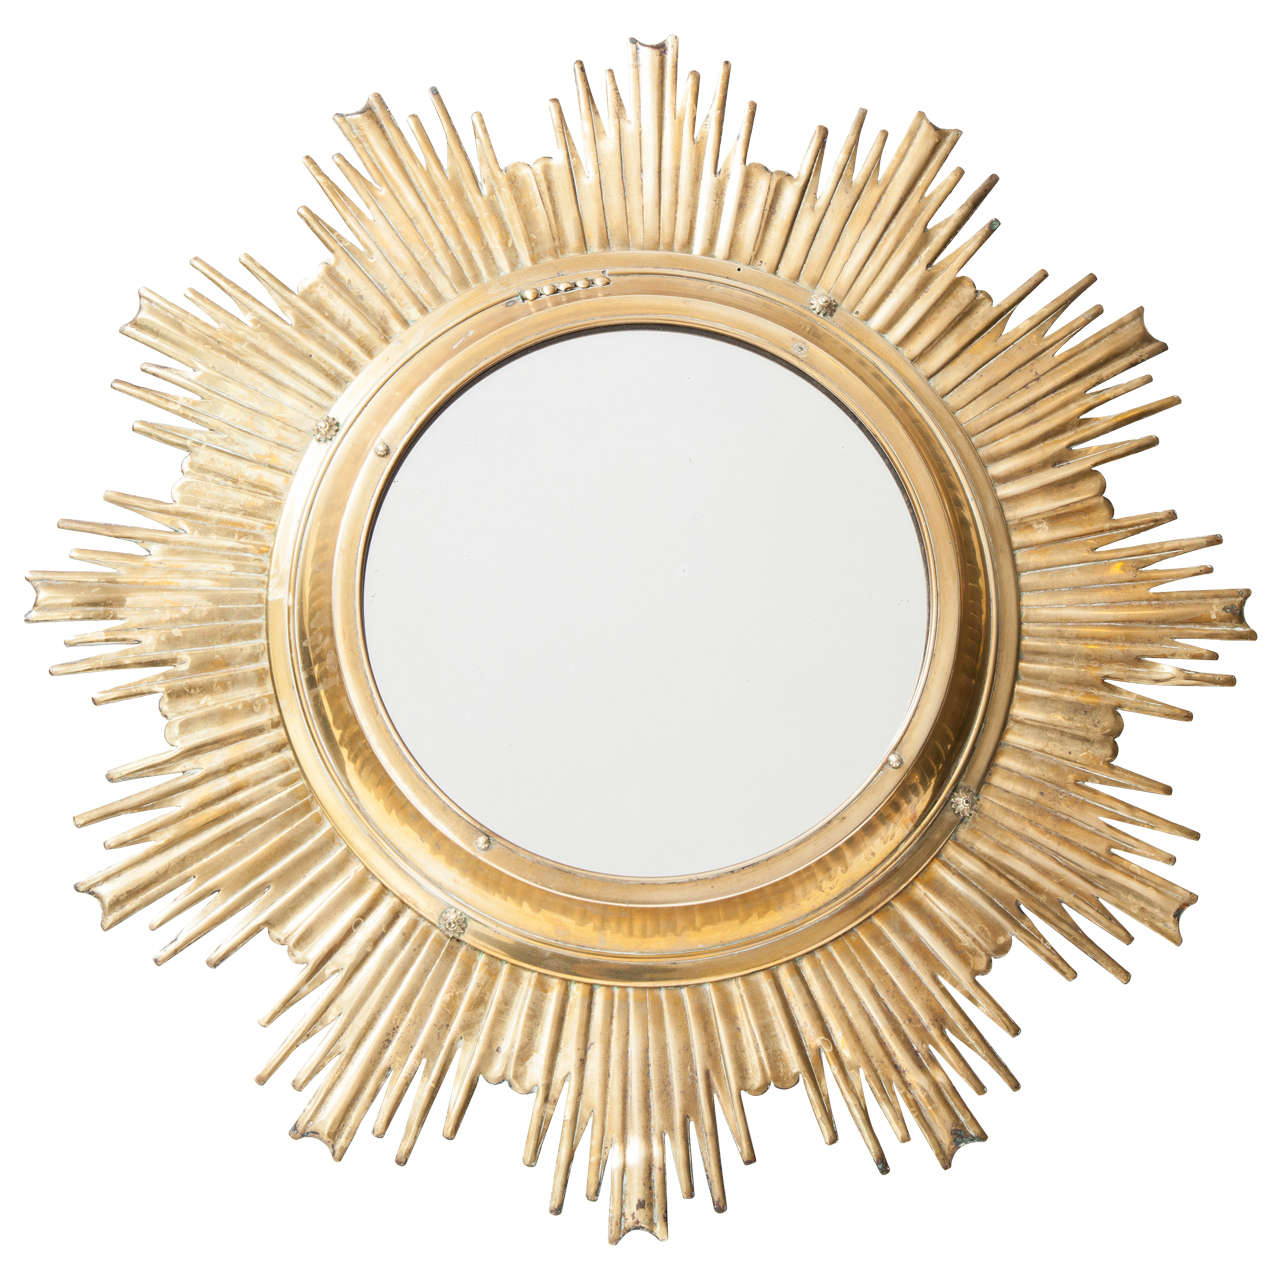 Solid brass high quality sunburst mirror france 1950s for for Mirror quality